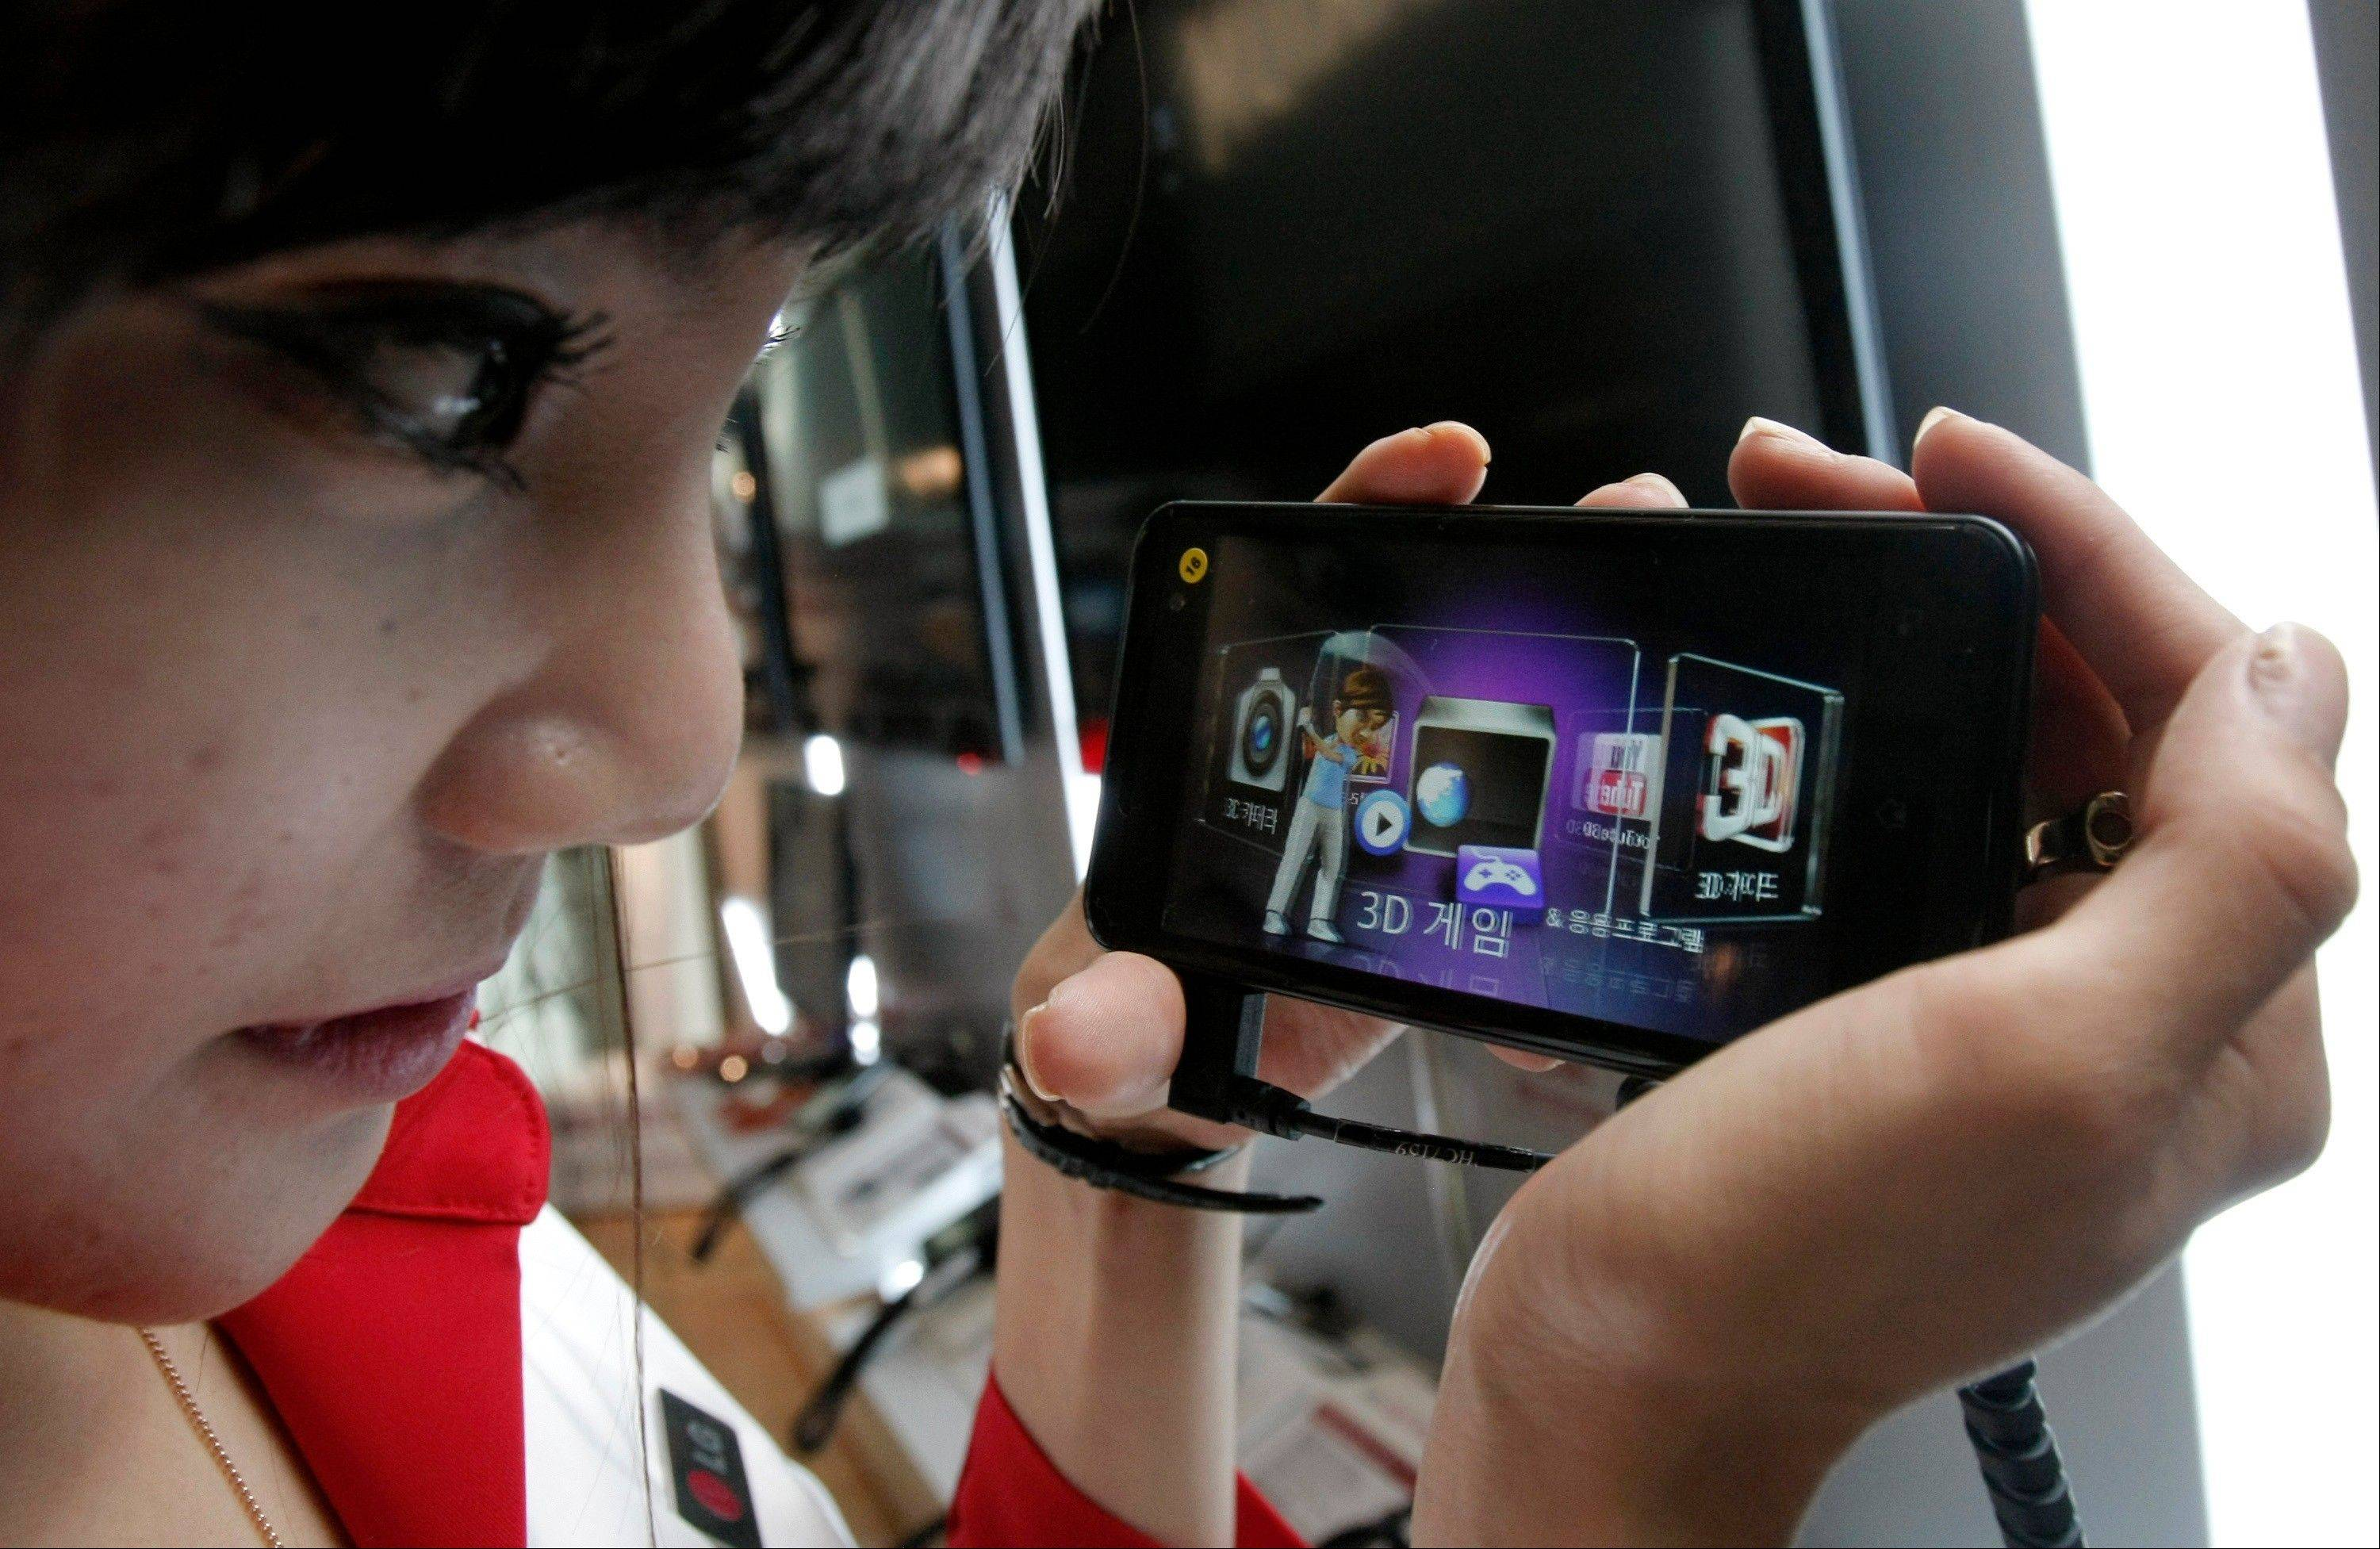 A model looks at a LG Electronics� Optimus 3D phone during a news conference Thursday in Seoul, South Korea. LG Electronics is touting 3D smartphones as an alternative to dedicated handheld game devices.